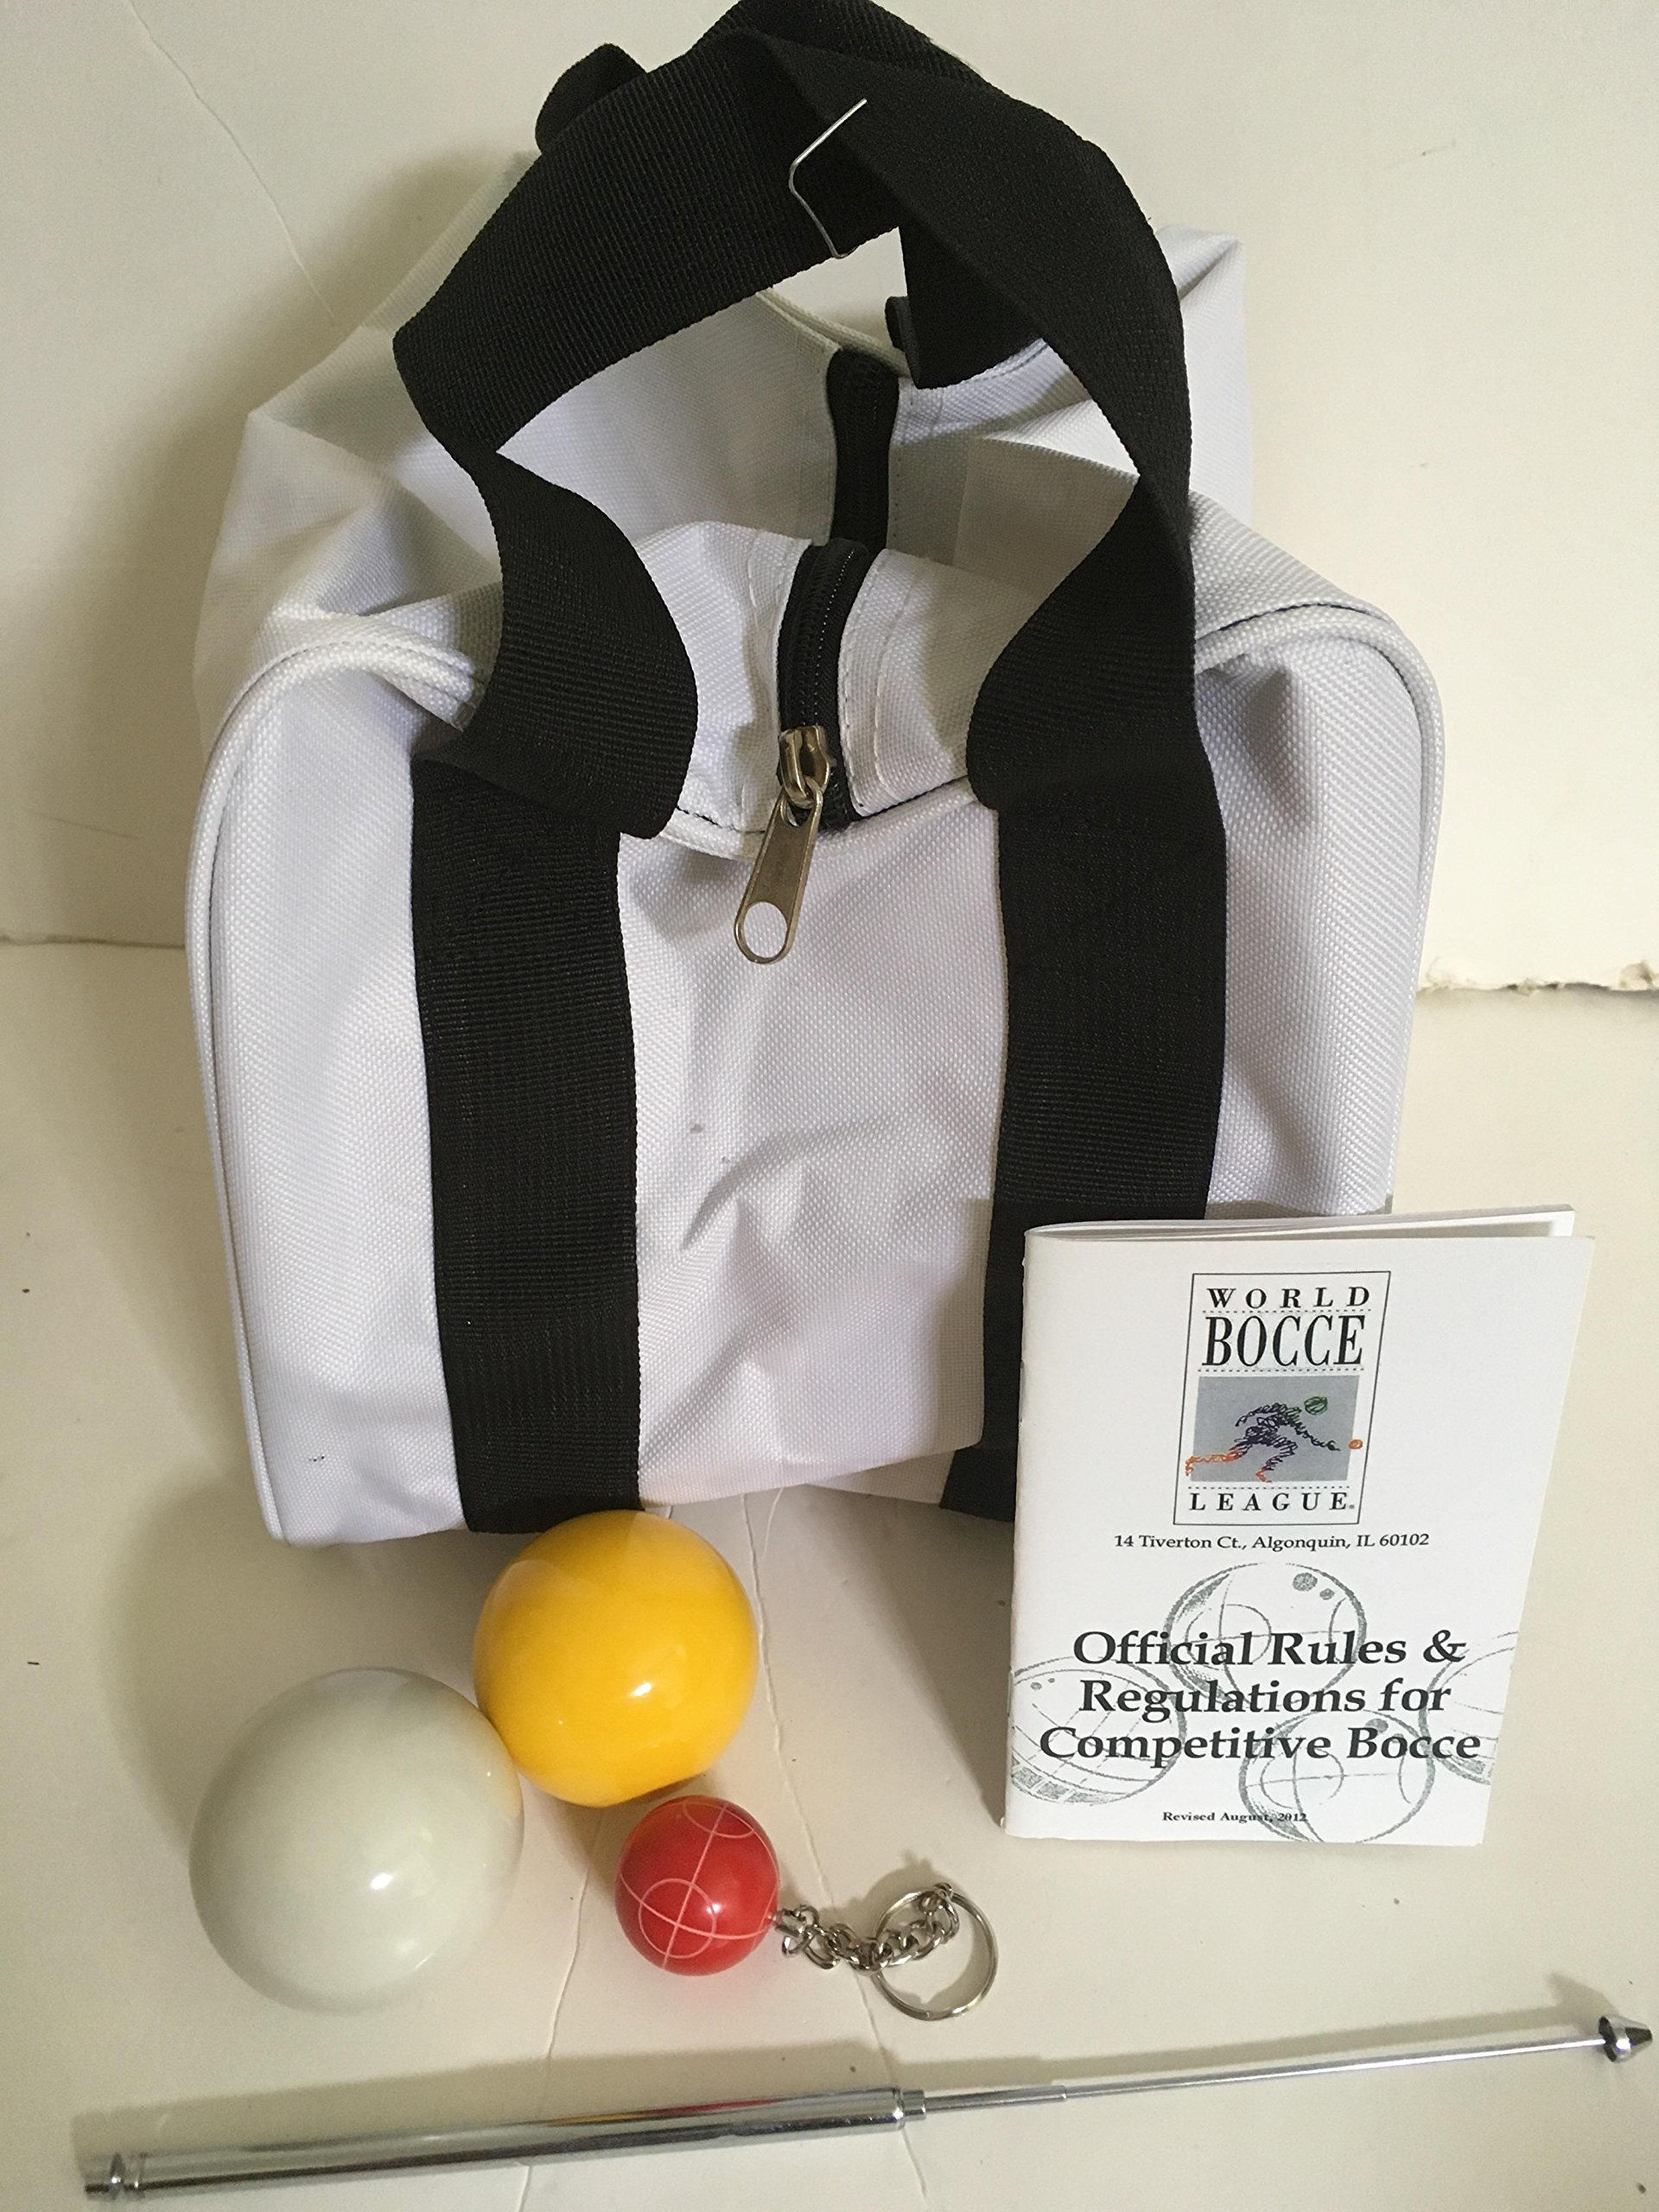 Unique Bocce Ball Accessories Package - Extra Heavy Duty Nylon Bocce Bag (White with Black Handles), yellow and white pallinas, Extendable Measuring Device, Rule Book and Keychain by BuyBocceBalls